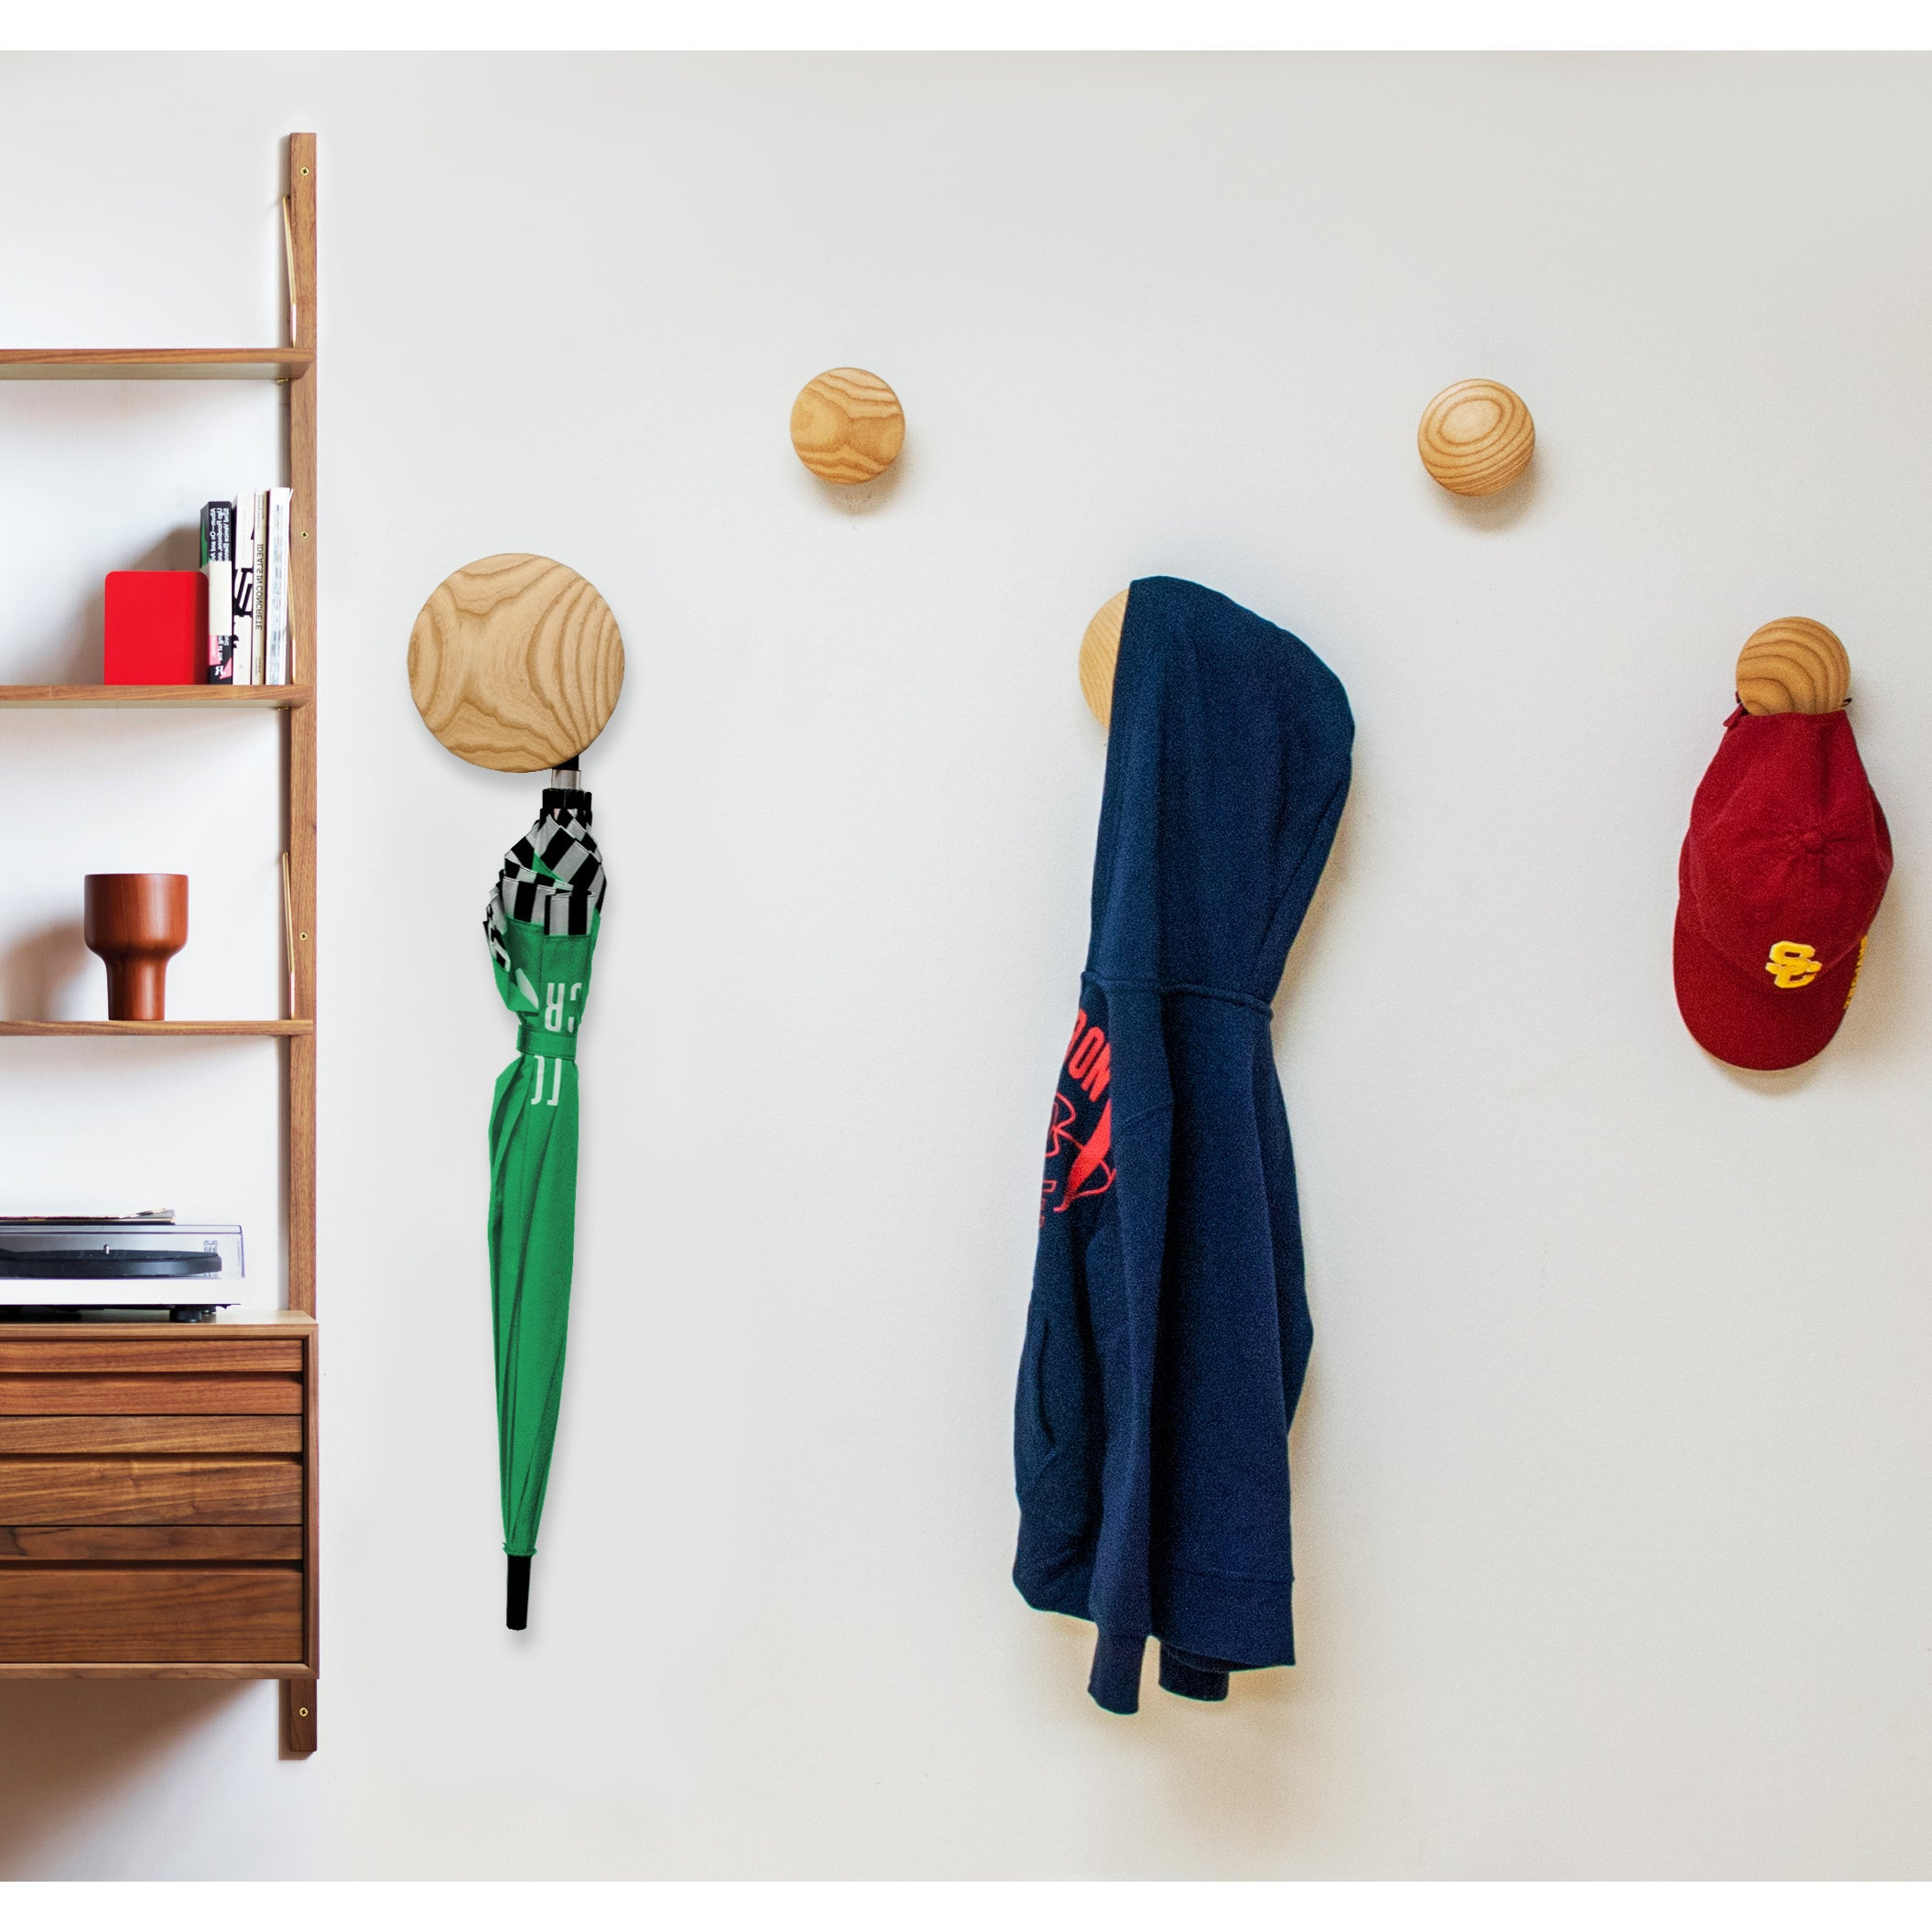 design wall surripui picture decor ikea awesome amazing images inspiration hooks of decorative decoration ideas outstanding hangers photo